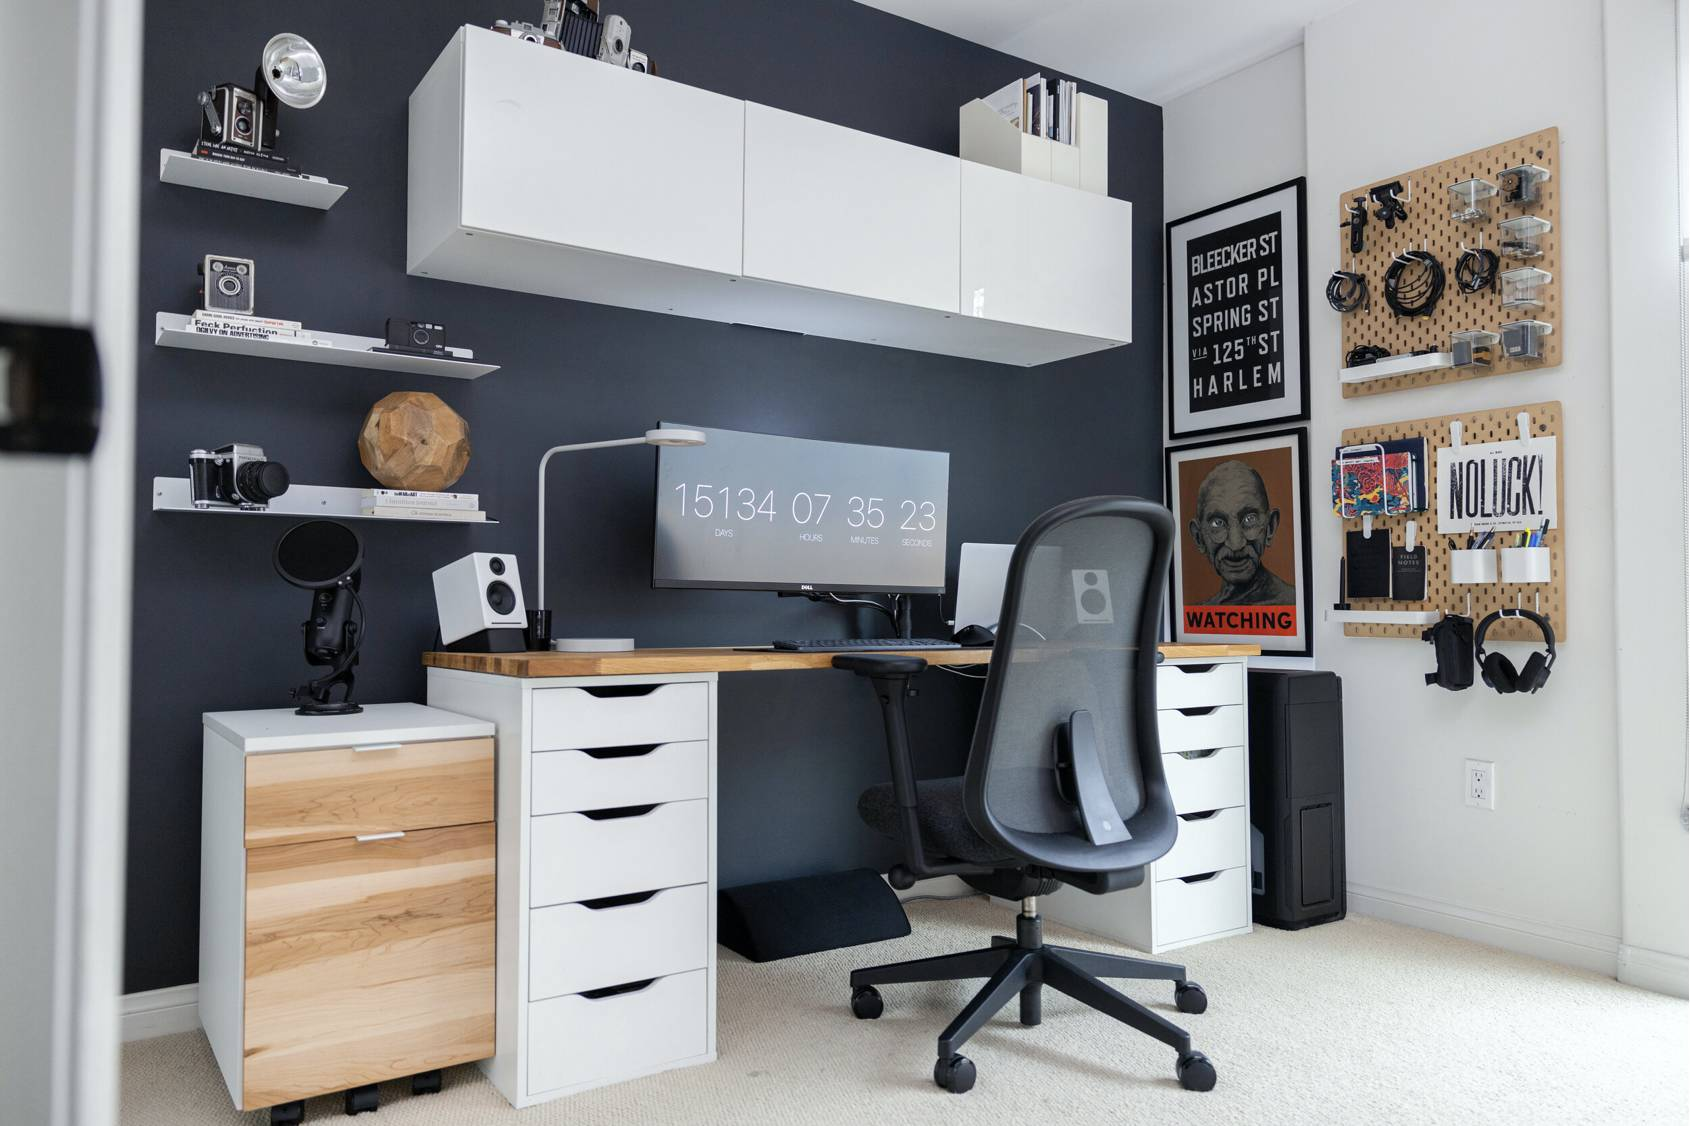 MatthewEncina's Setup - Organized Home Office – 2020 Update | Scooget